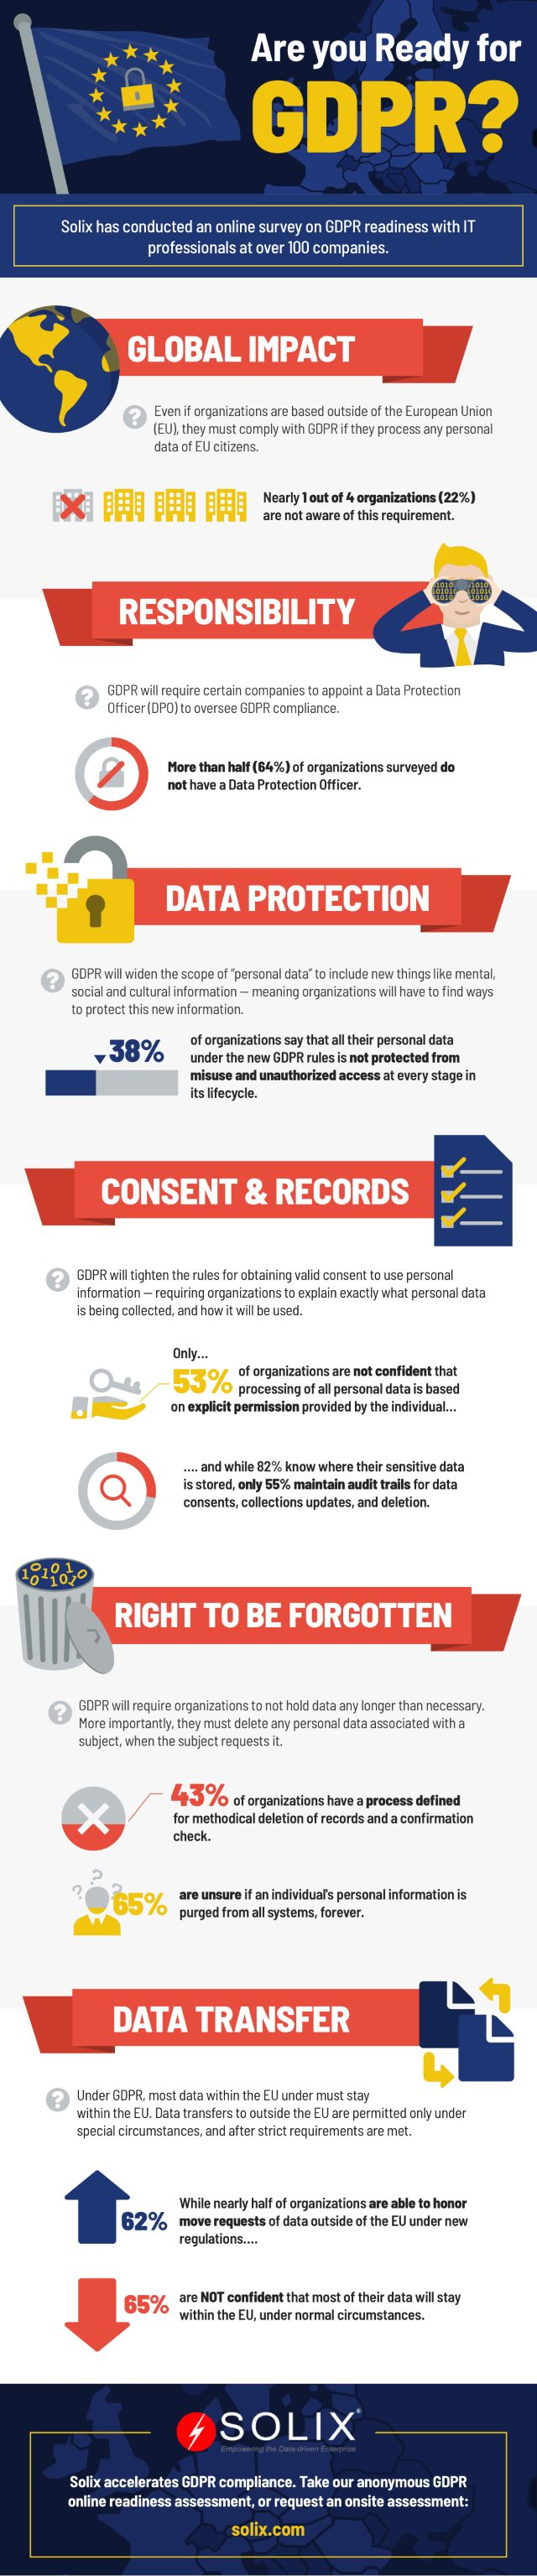 Solix GDPR infographic